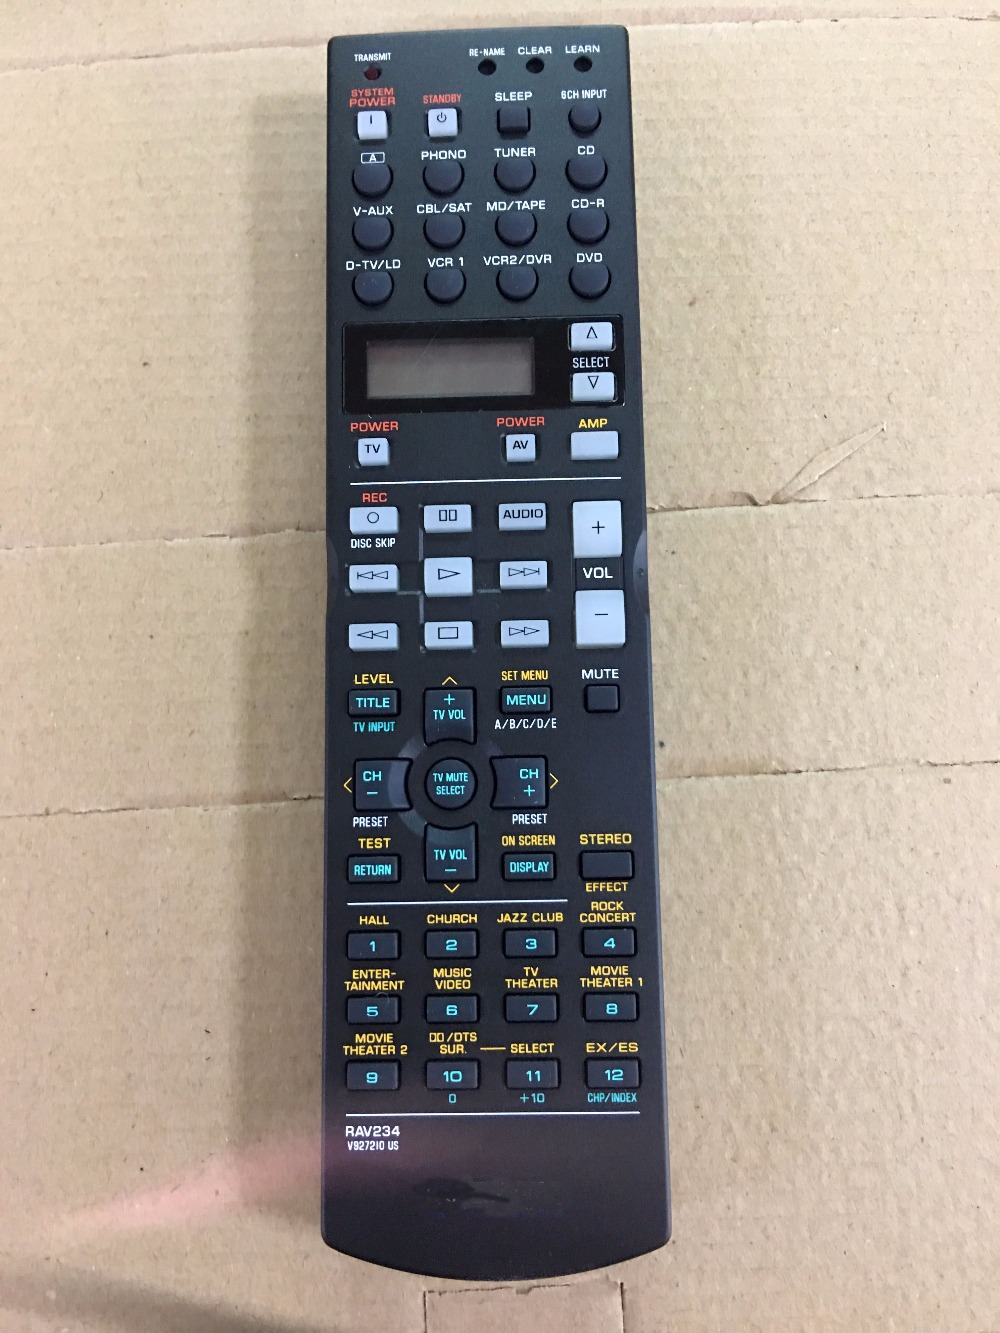 NEW Original RAV234 V927210 US Remote Control For YAMAHA theater AV Amplifier RX-V740 DSP-AX1300 DSP-AX740 HTR-5590 RX-V1200 цена